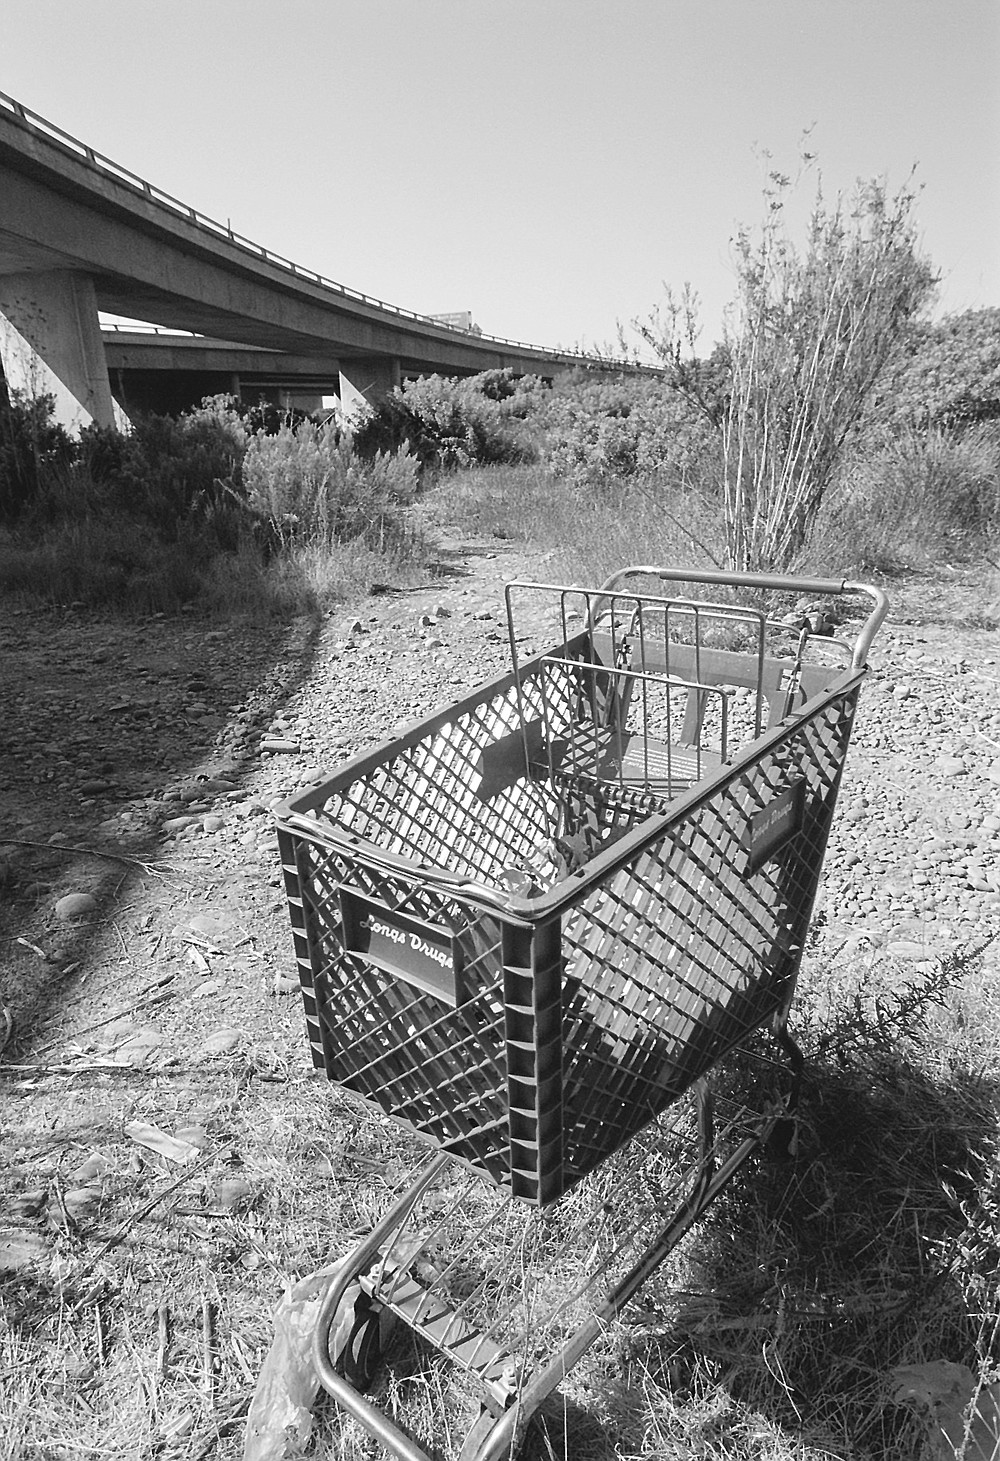 The river has largemouth bass and green sunfish, as well as shopping carts and Styrofoam containers.